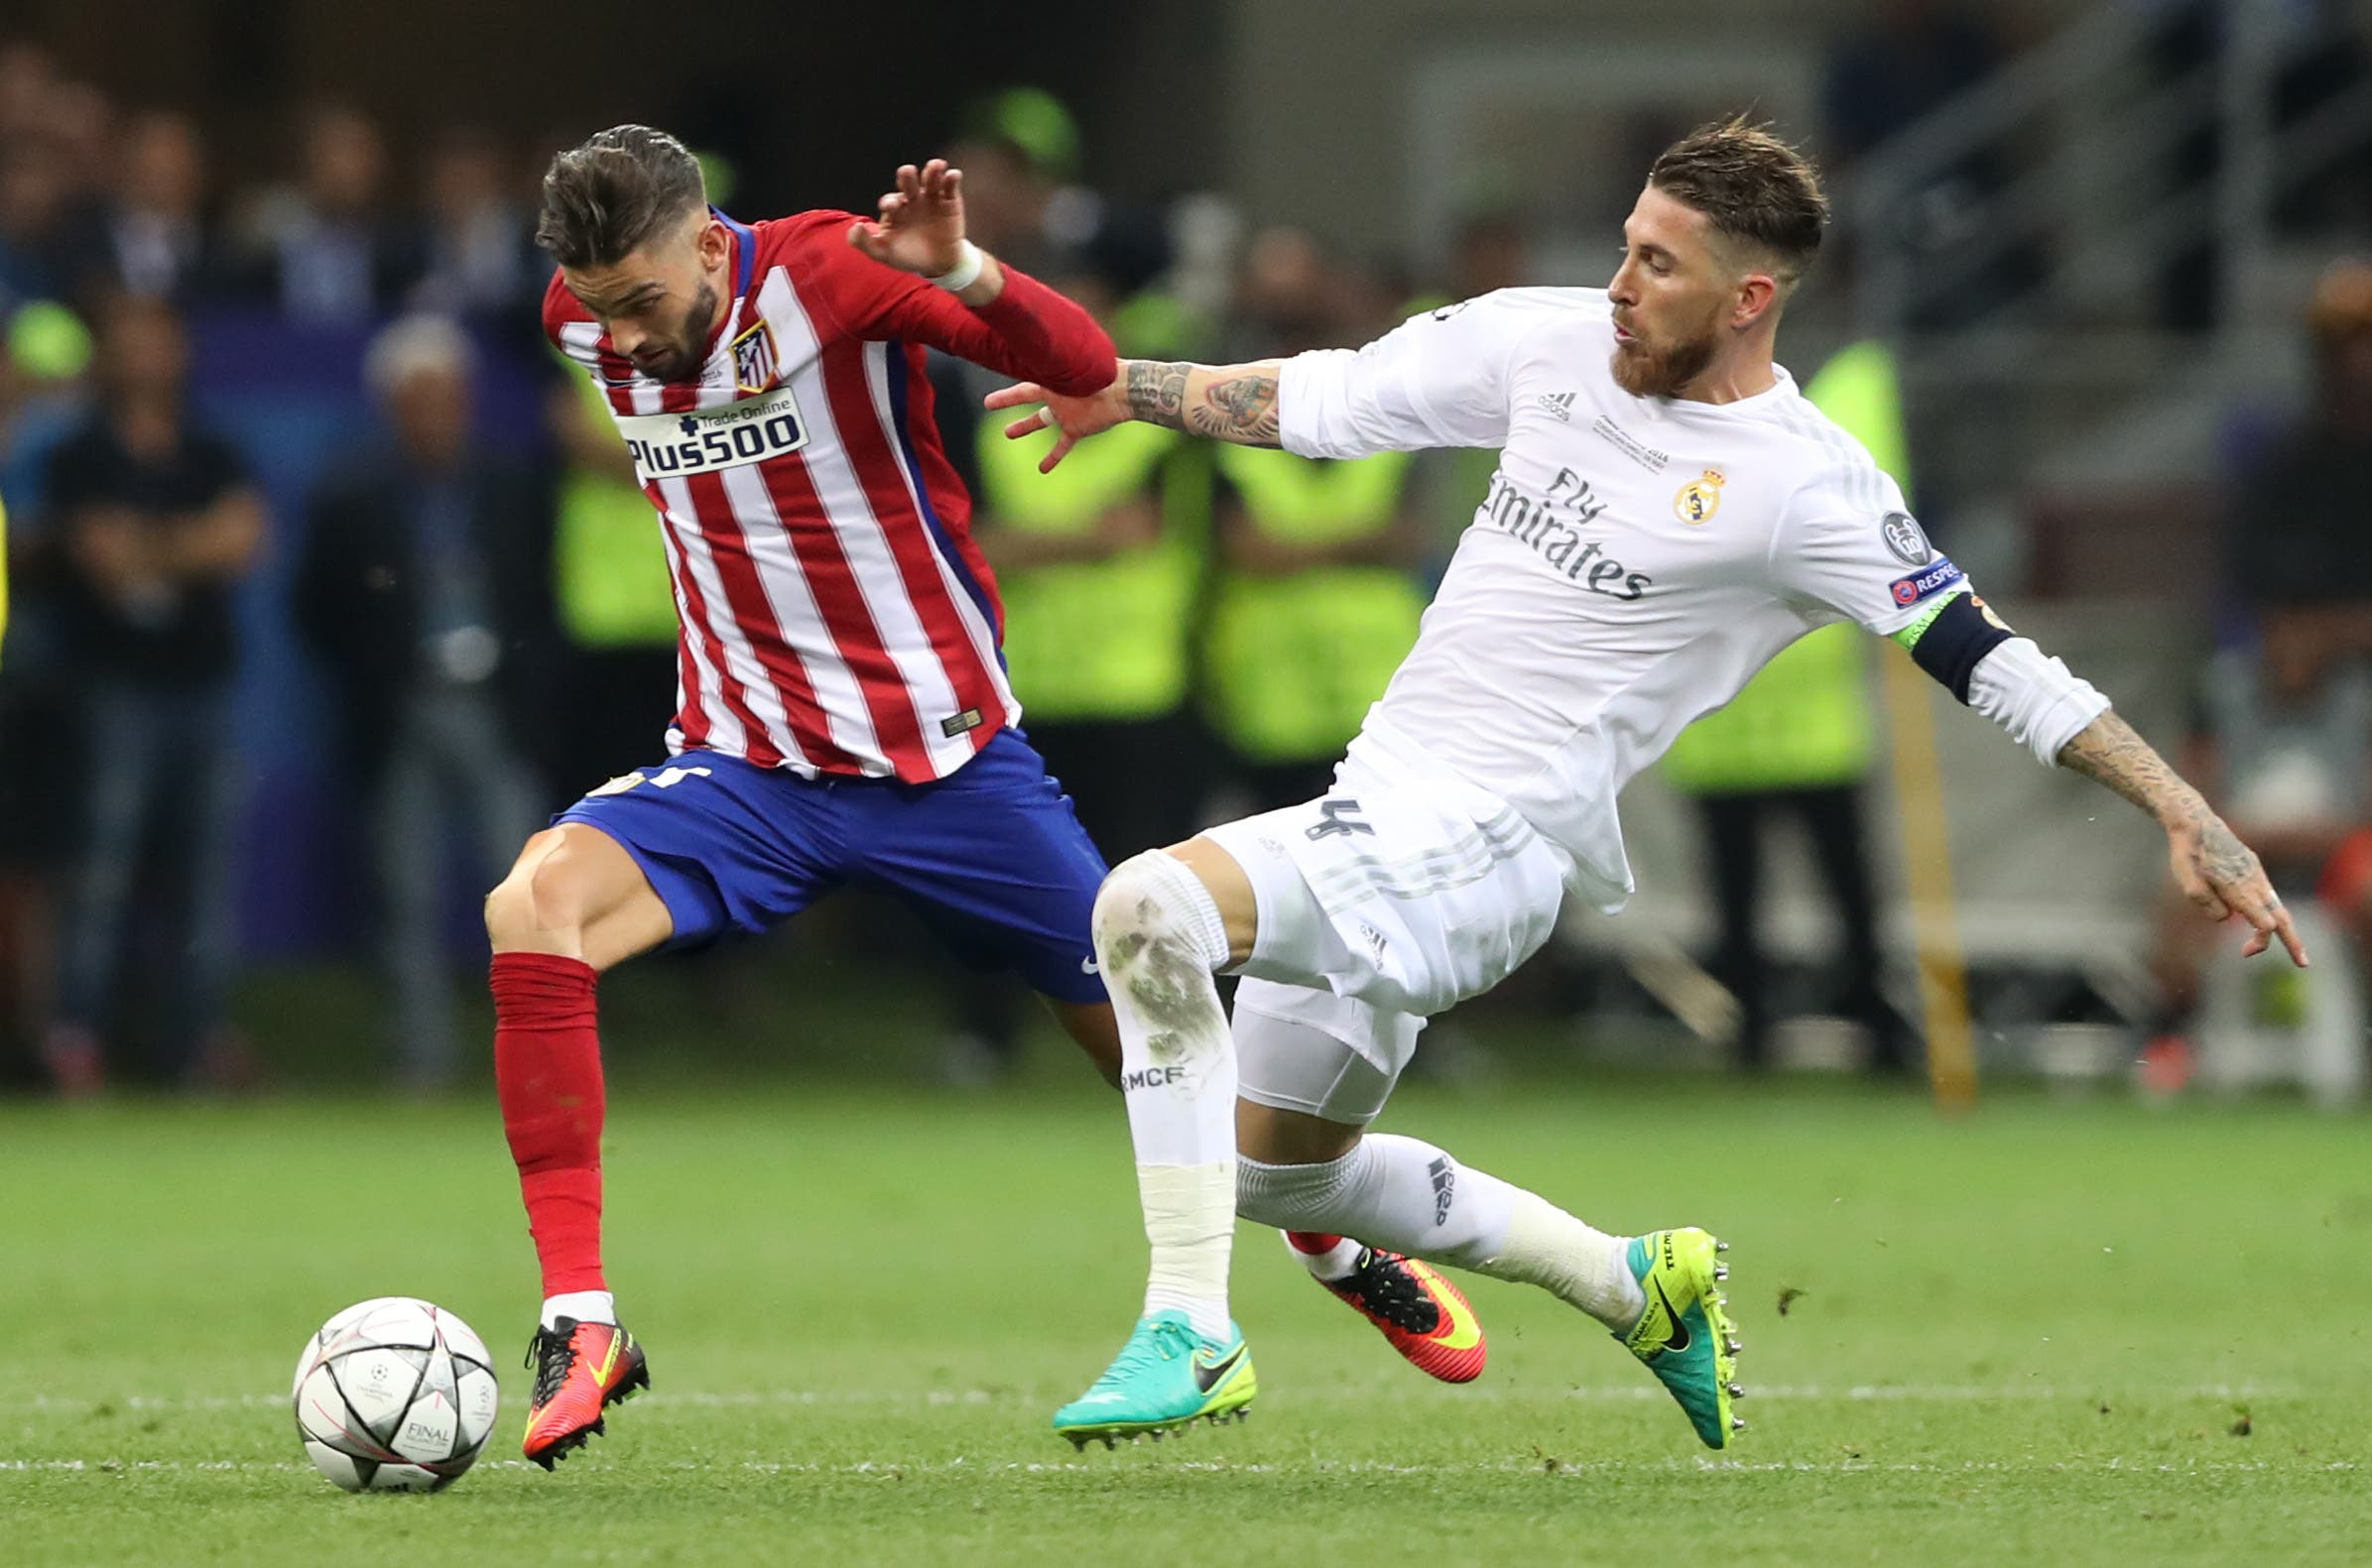 Real Madrid's Sergio Ramos fouls Atletico Madrid's Yannick Ferreira Carrasco resulting in a yellow card to Ramos reuters